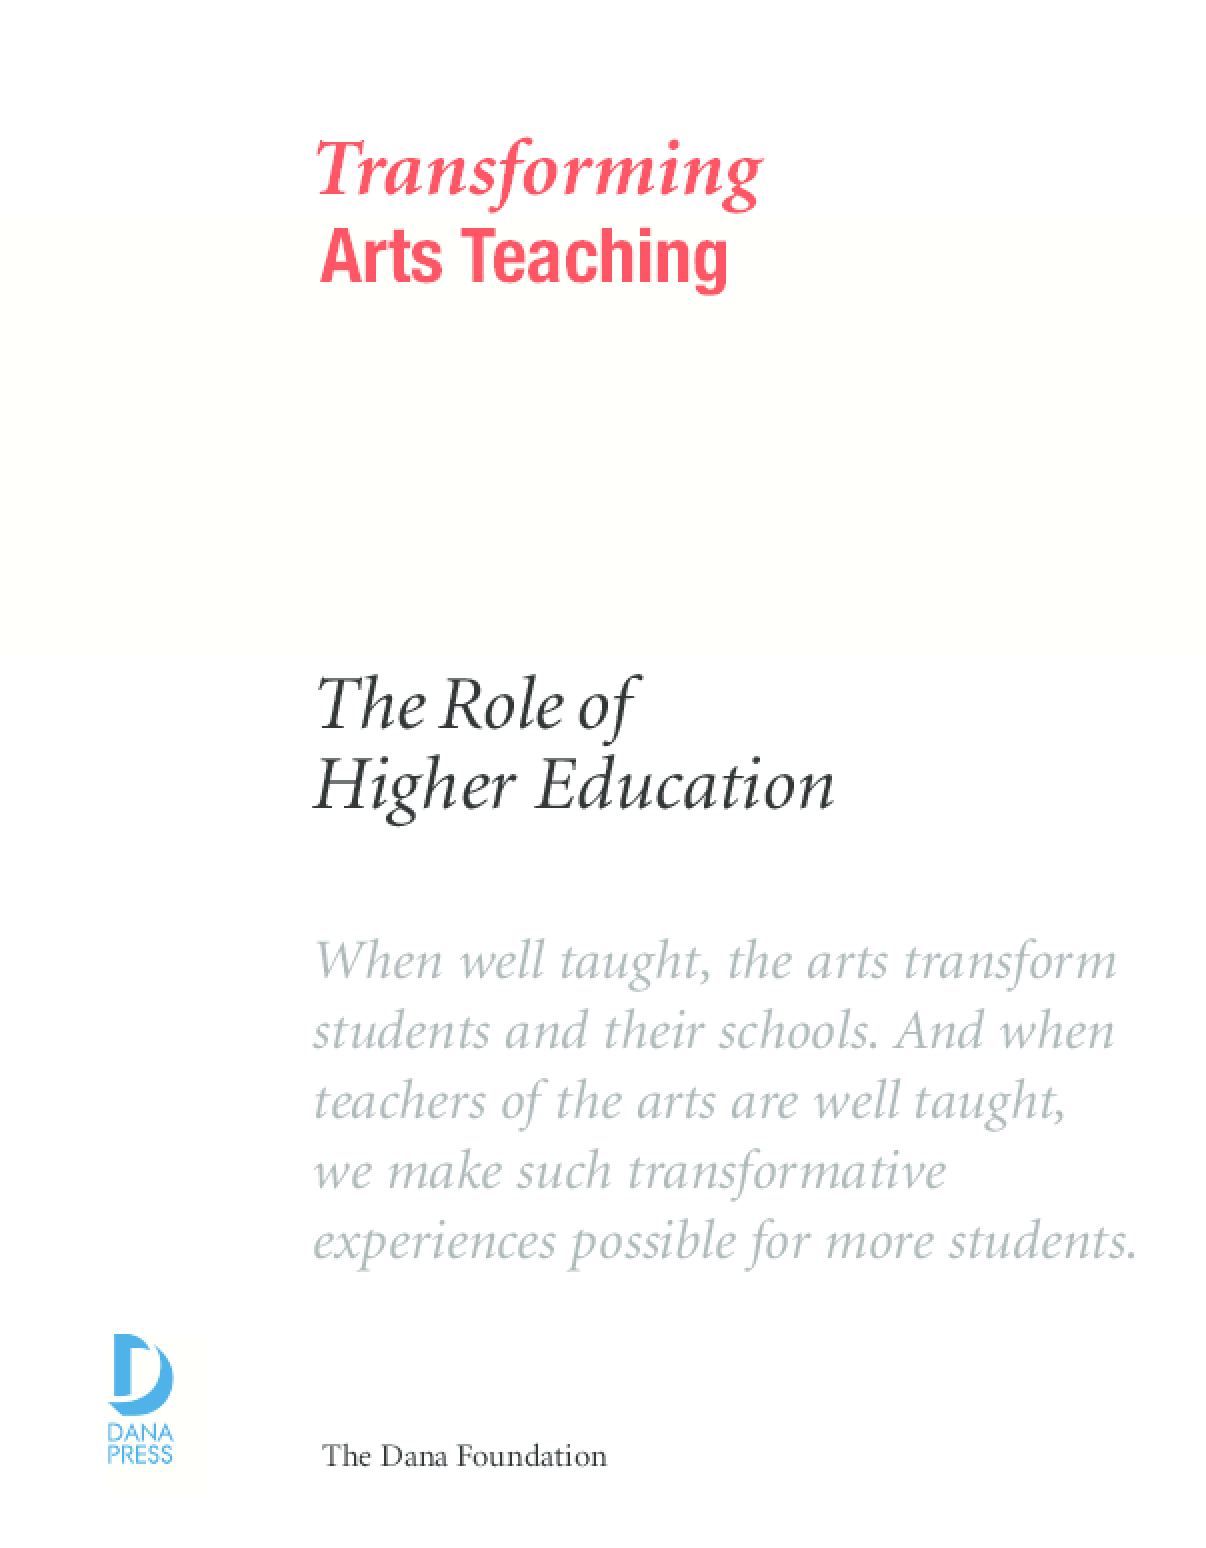 Transforming Arts Teaching: The Role of Higher Education